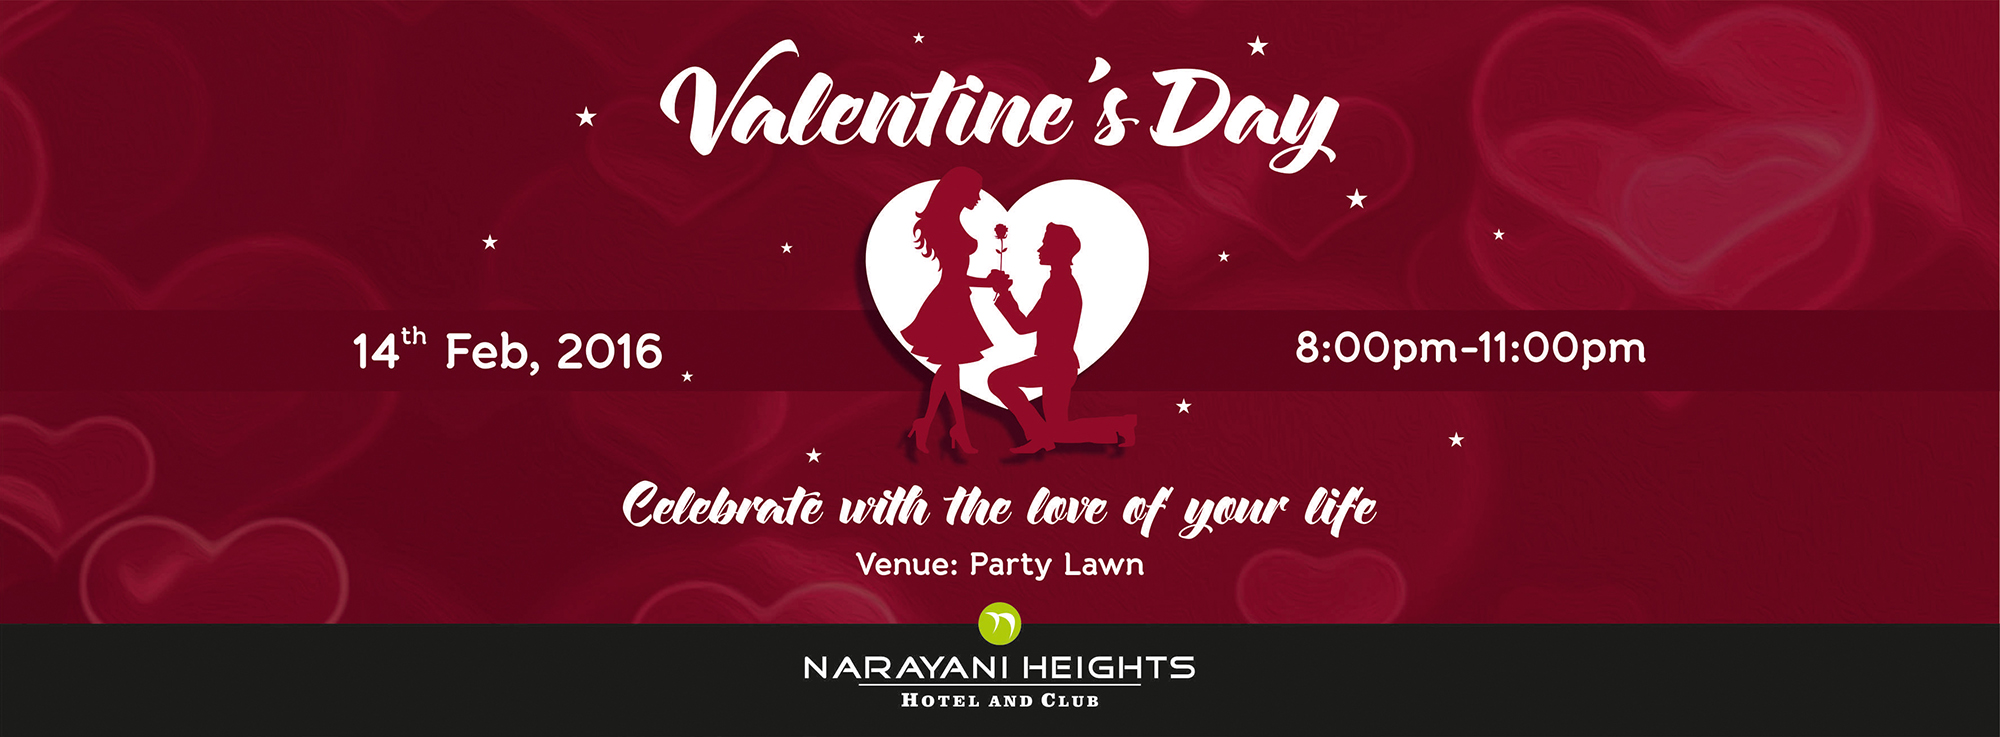 Valentines day for 13th floor bangalore candle light dinner